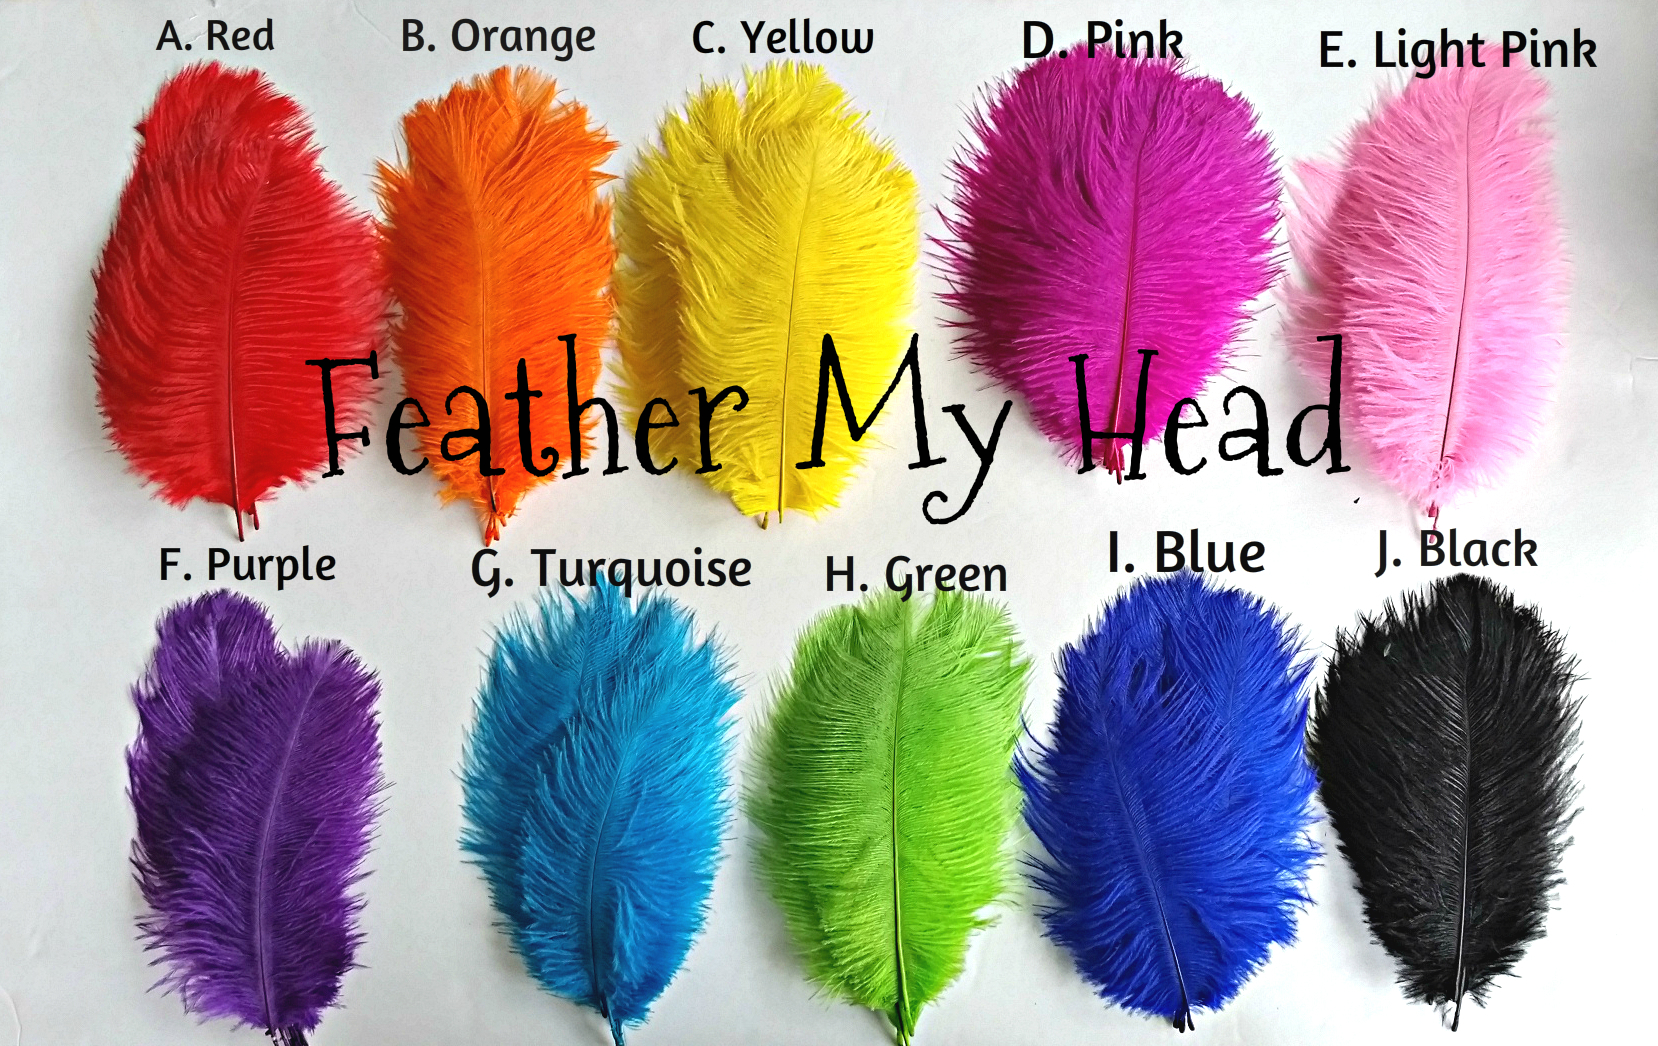 ostich-feathers-6-to-8-inches-all-colors.jpg